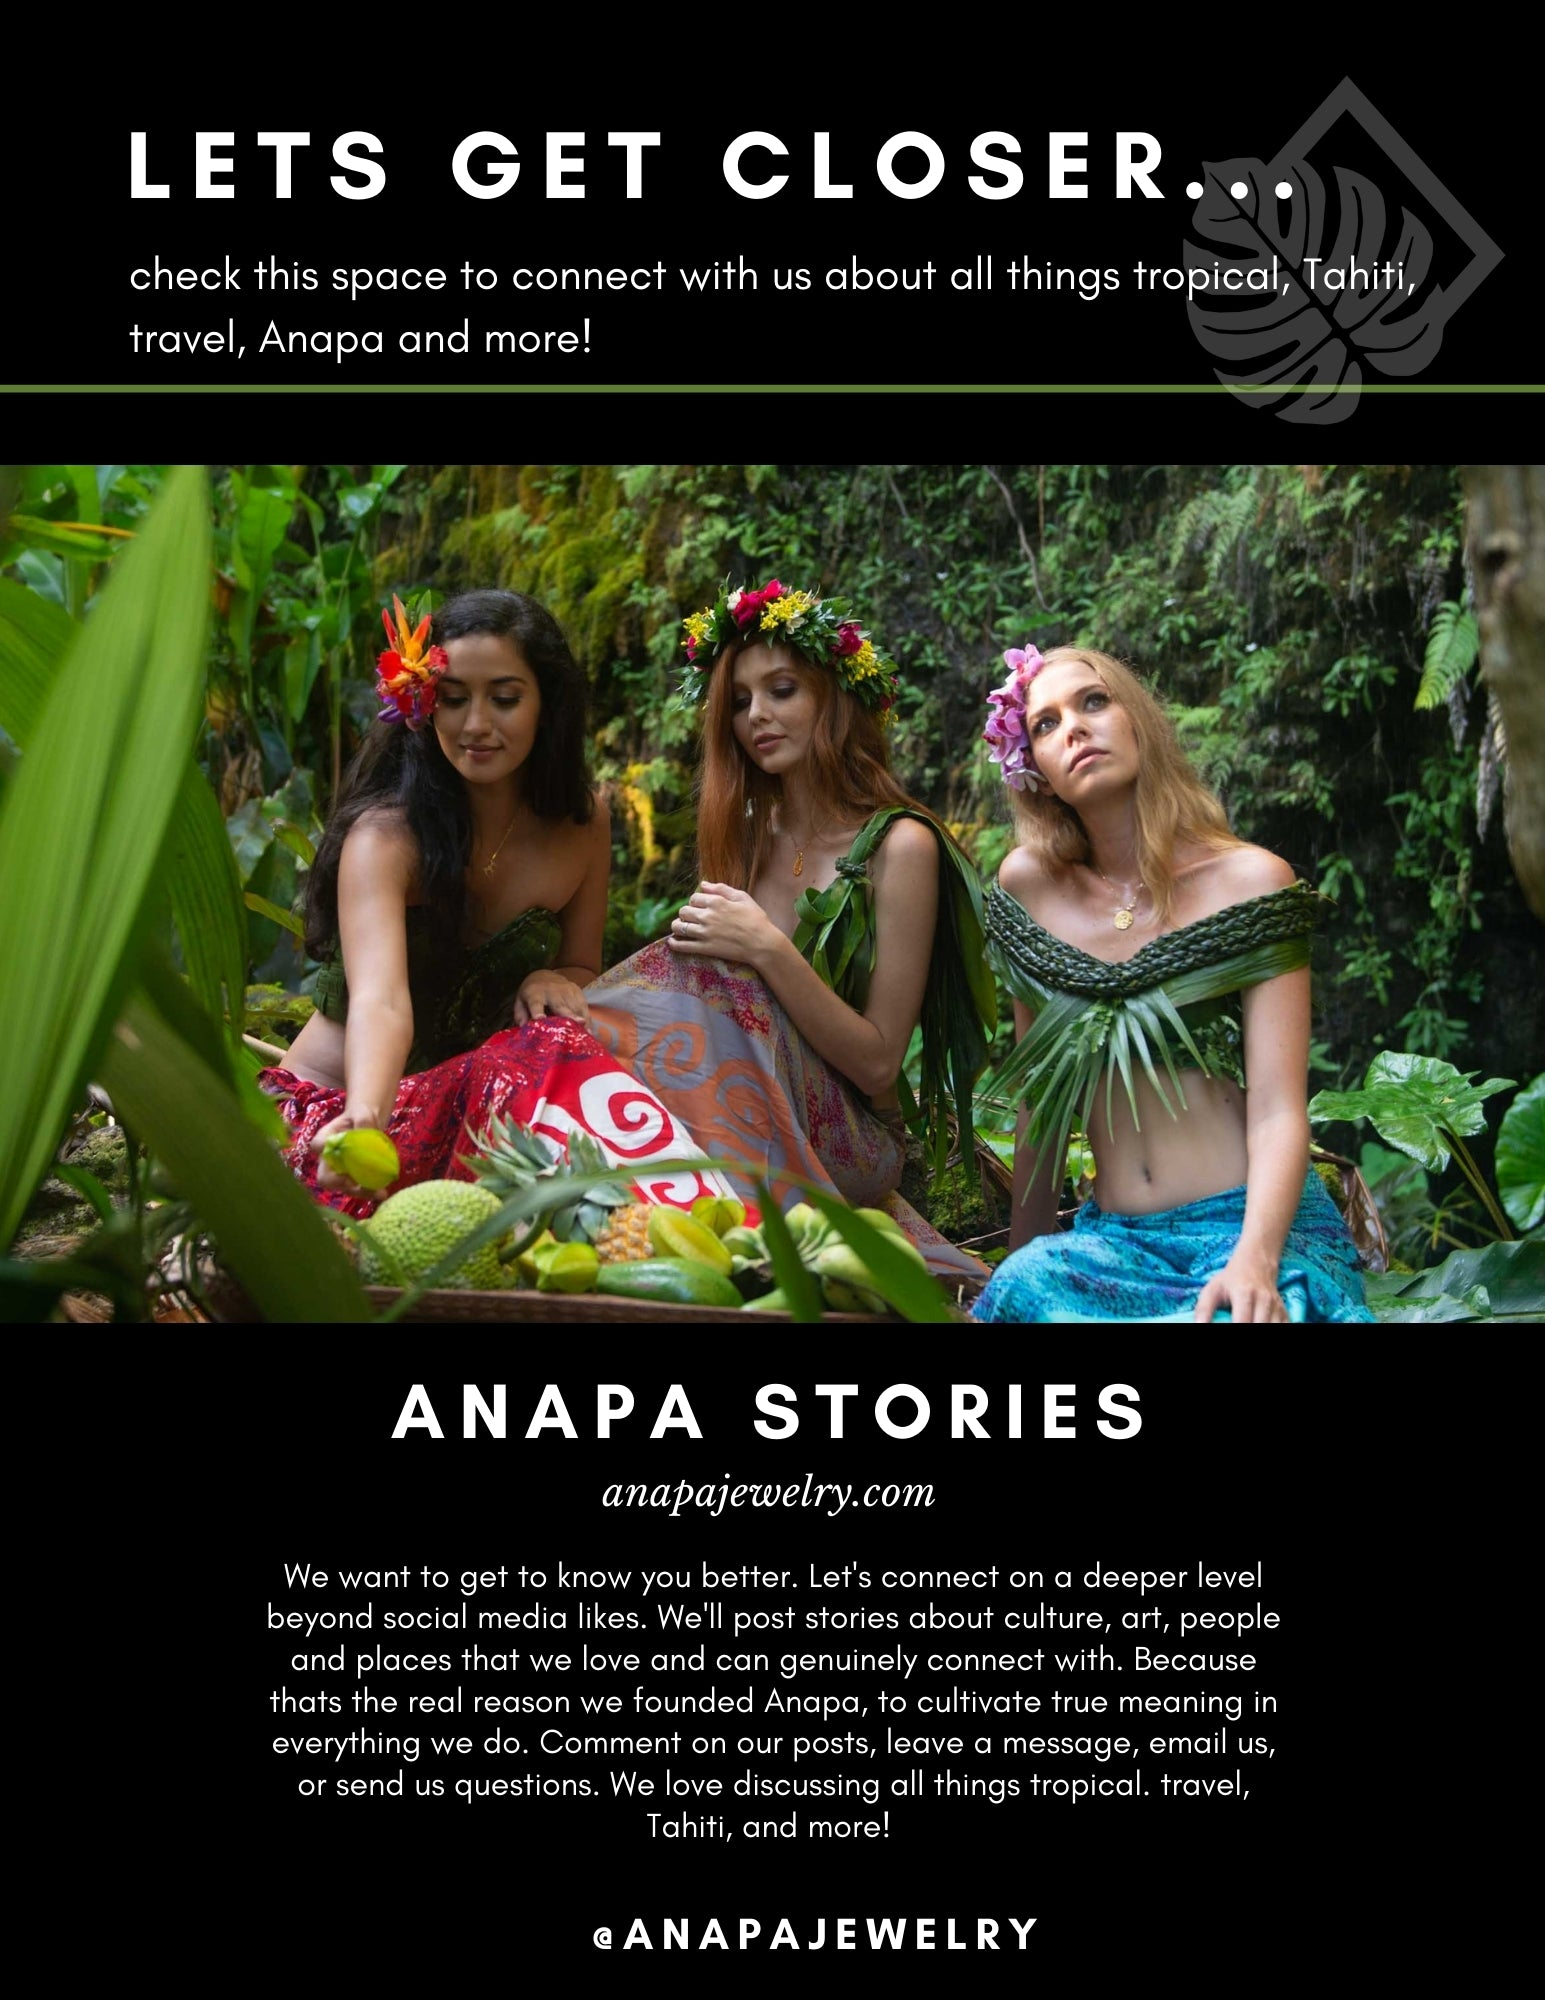 We want to get to know you better. Let's connect on a deeper level beyond social media likes. We'll post stories about culture, art, people and places that we love and can genuinely connect with. Because thats the real reason we founded Anapa, to cultivate true meaning in everything we do. Comment on our posts, leave a message, email us, or send us questions. We love discussing all things tropical. travel, Tahiti, and more!